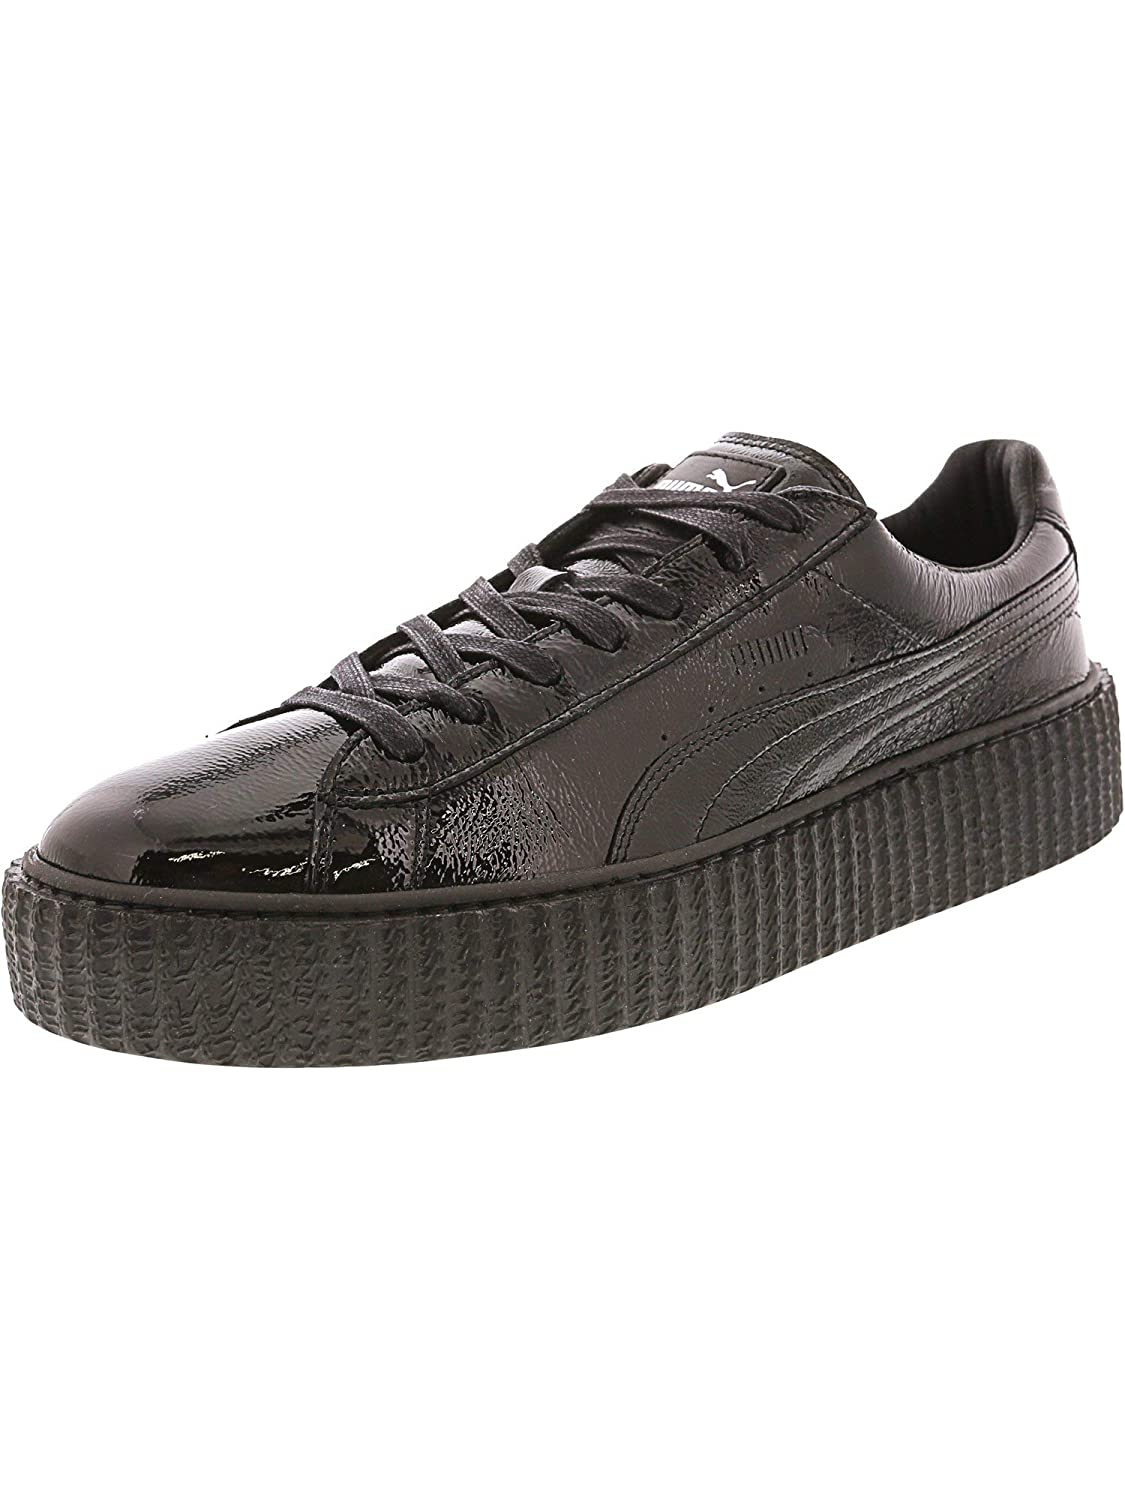 sneakers for cheap 31841 65d25 PUMA Select Men's x Fenty by Rihanna Cracked Creepers